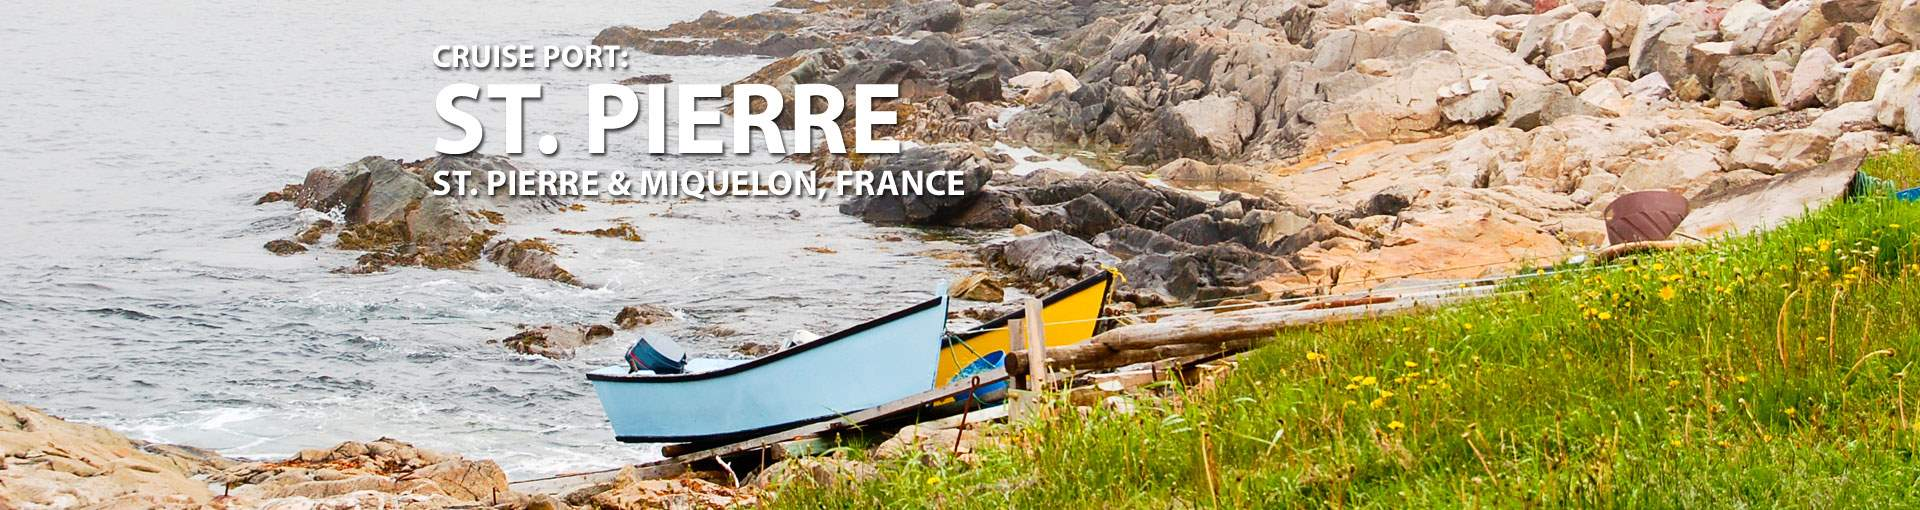 Cruises to St. Pierre, St. Pierre And Miquelon